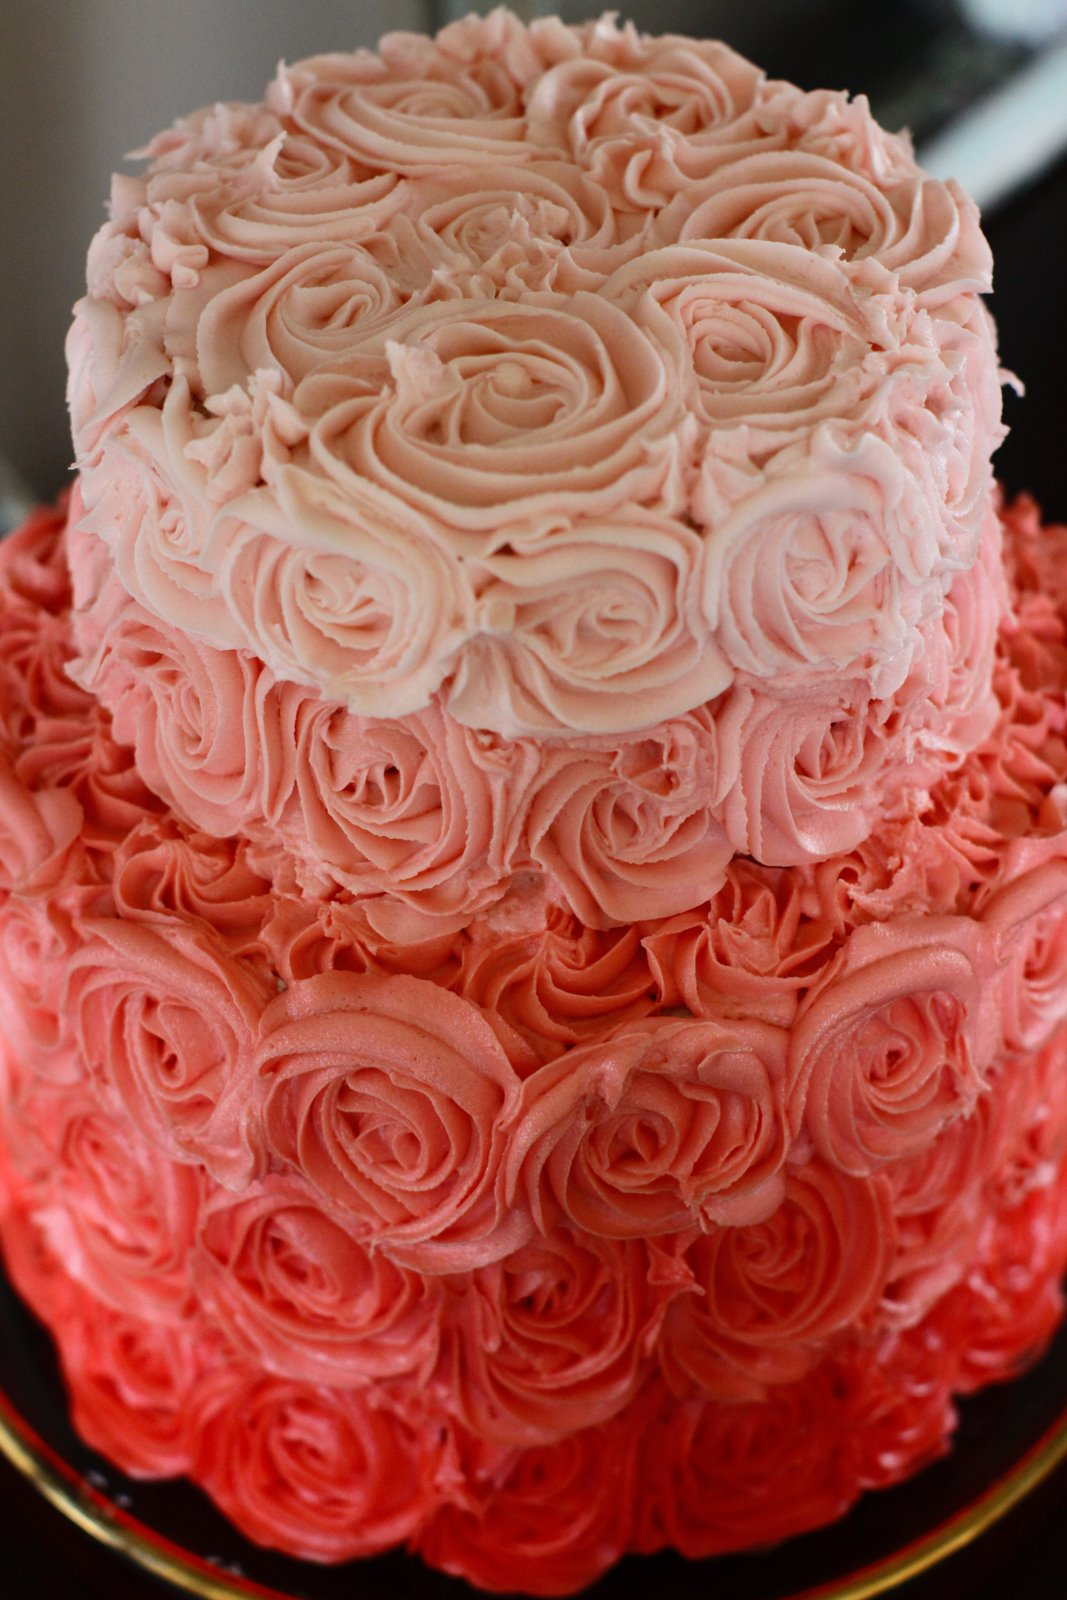 Images For Rose Cake : Ombre rose wedding cake OneWed.com